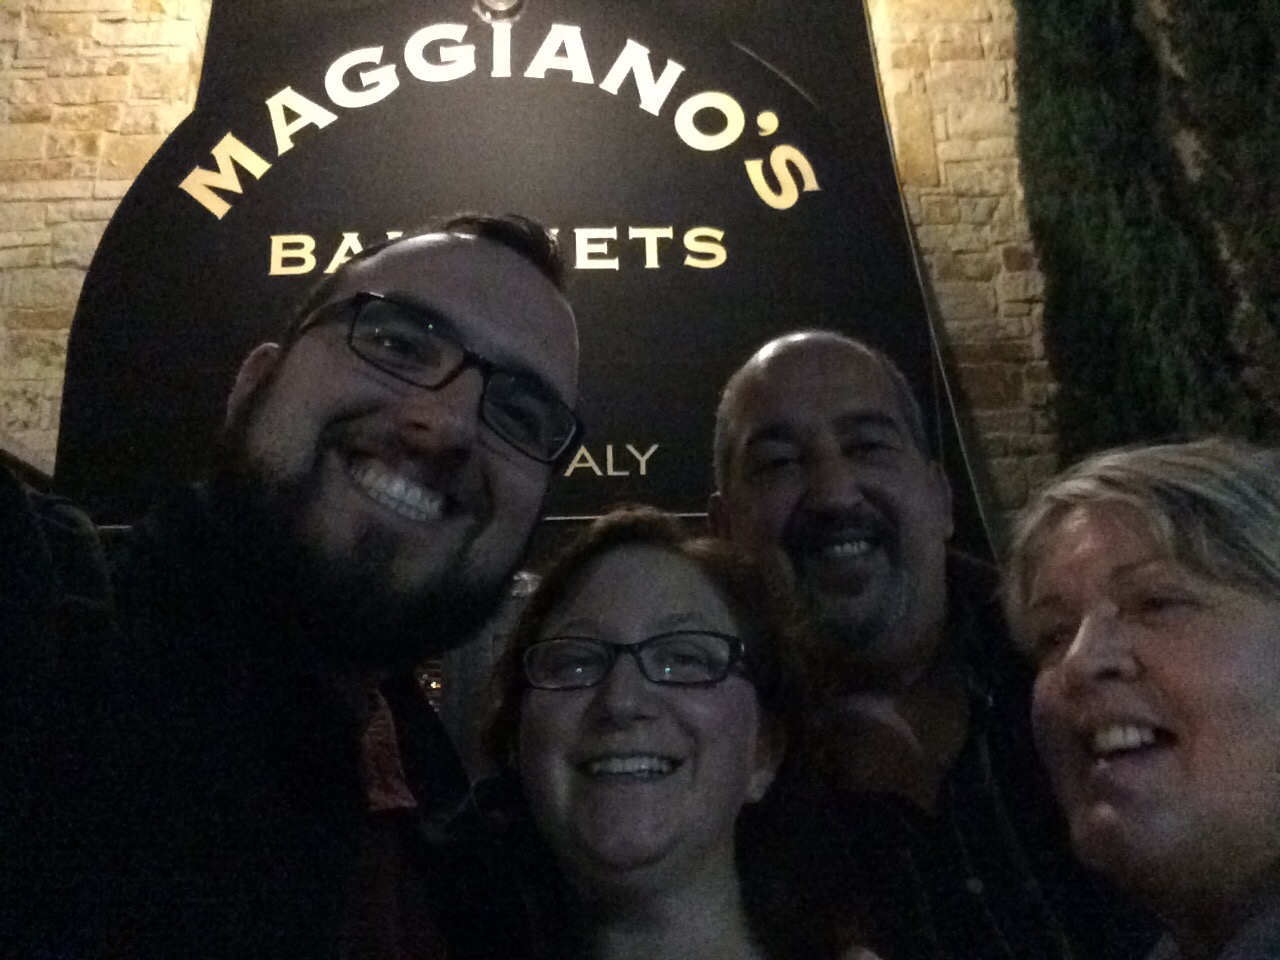 A night out at Maggiano's